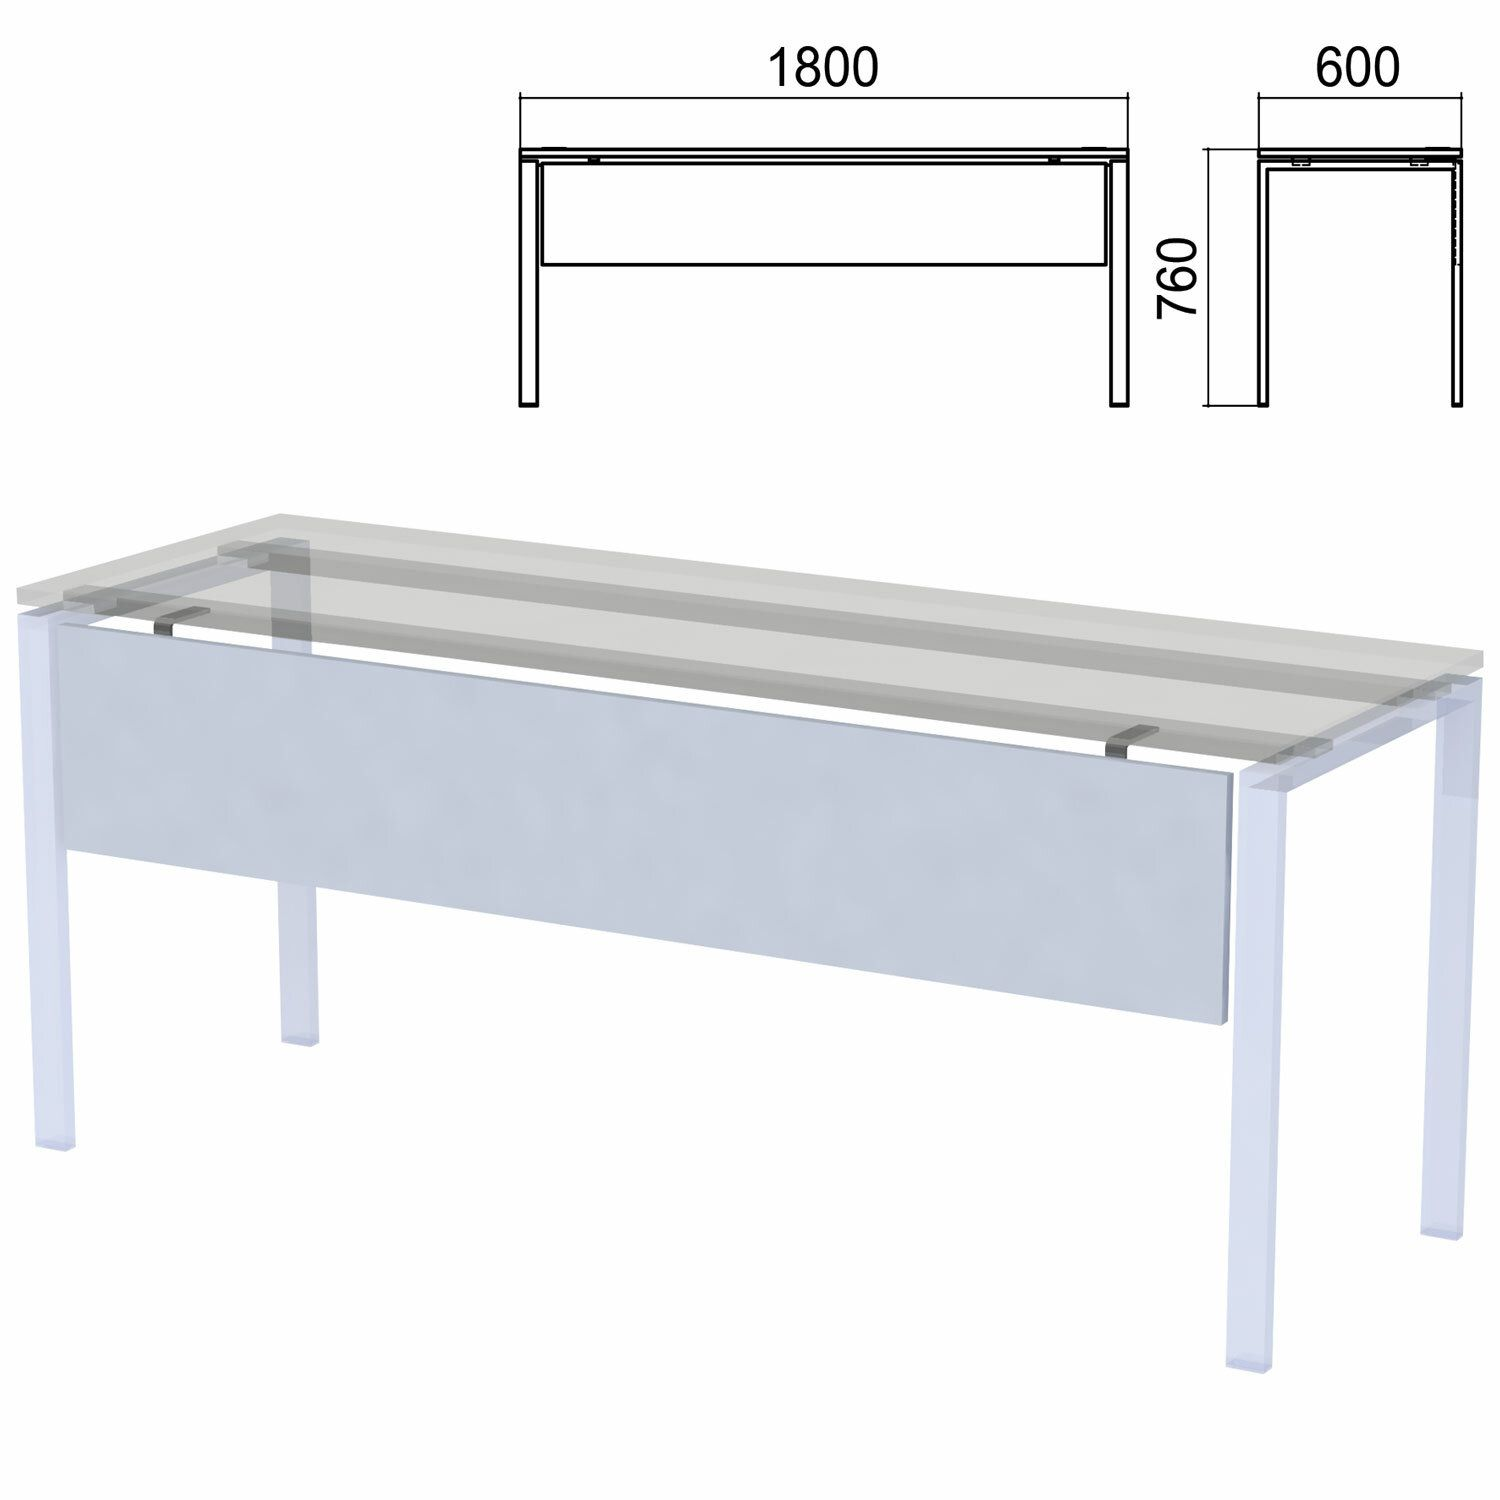 "Drawer for tables on metal frame ""Argo"", 1800 mm wide, gray"